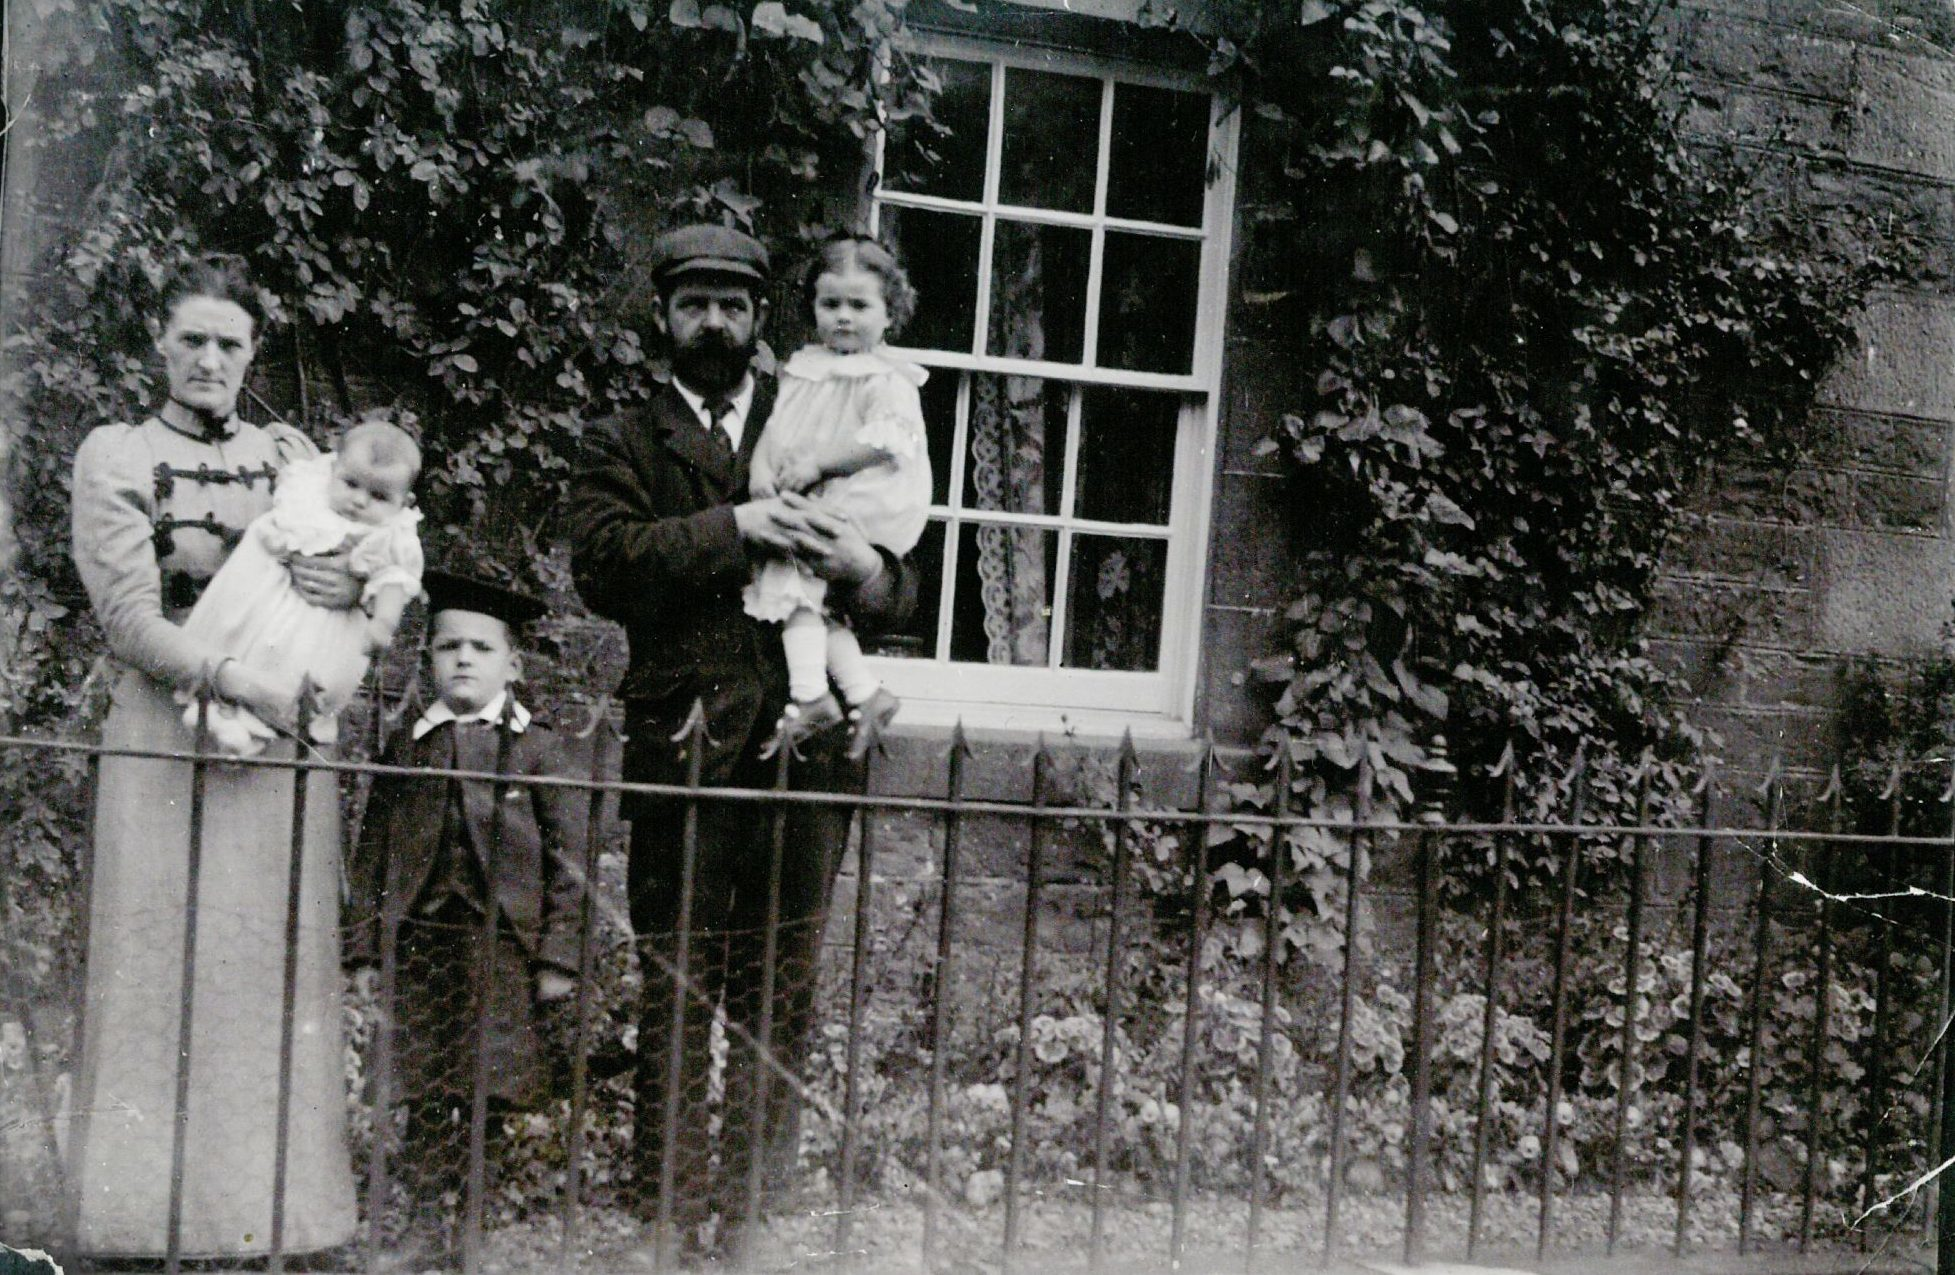 Jean's mother Jane in her father's arms, with her uncle George and baby Mary.